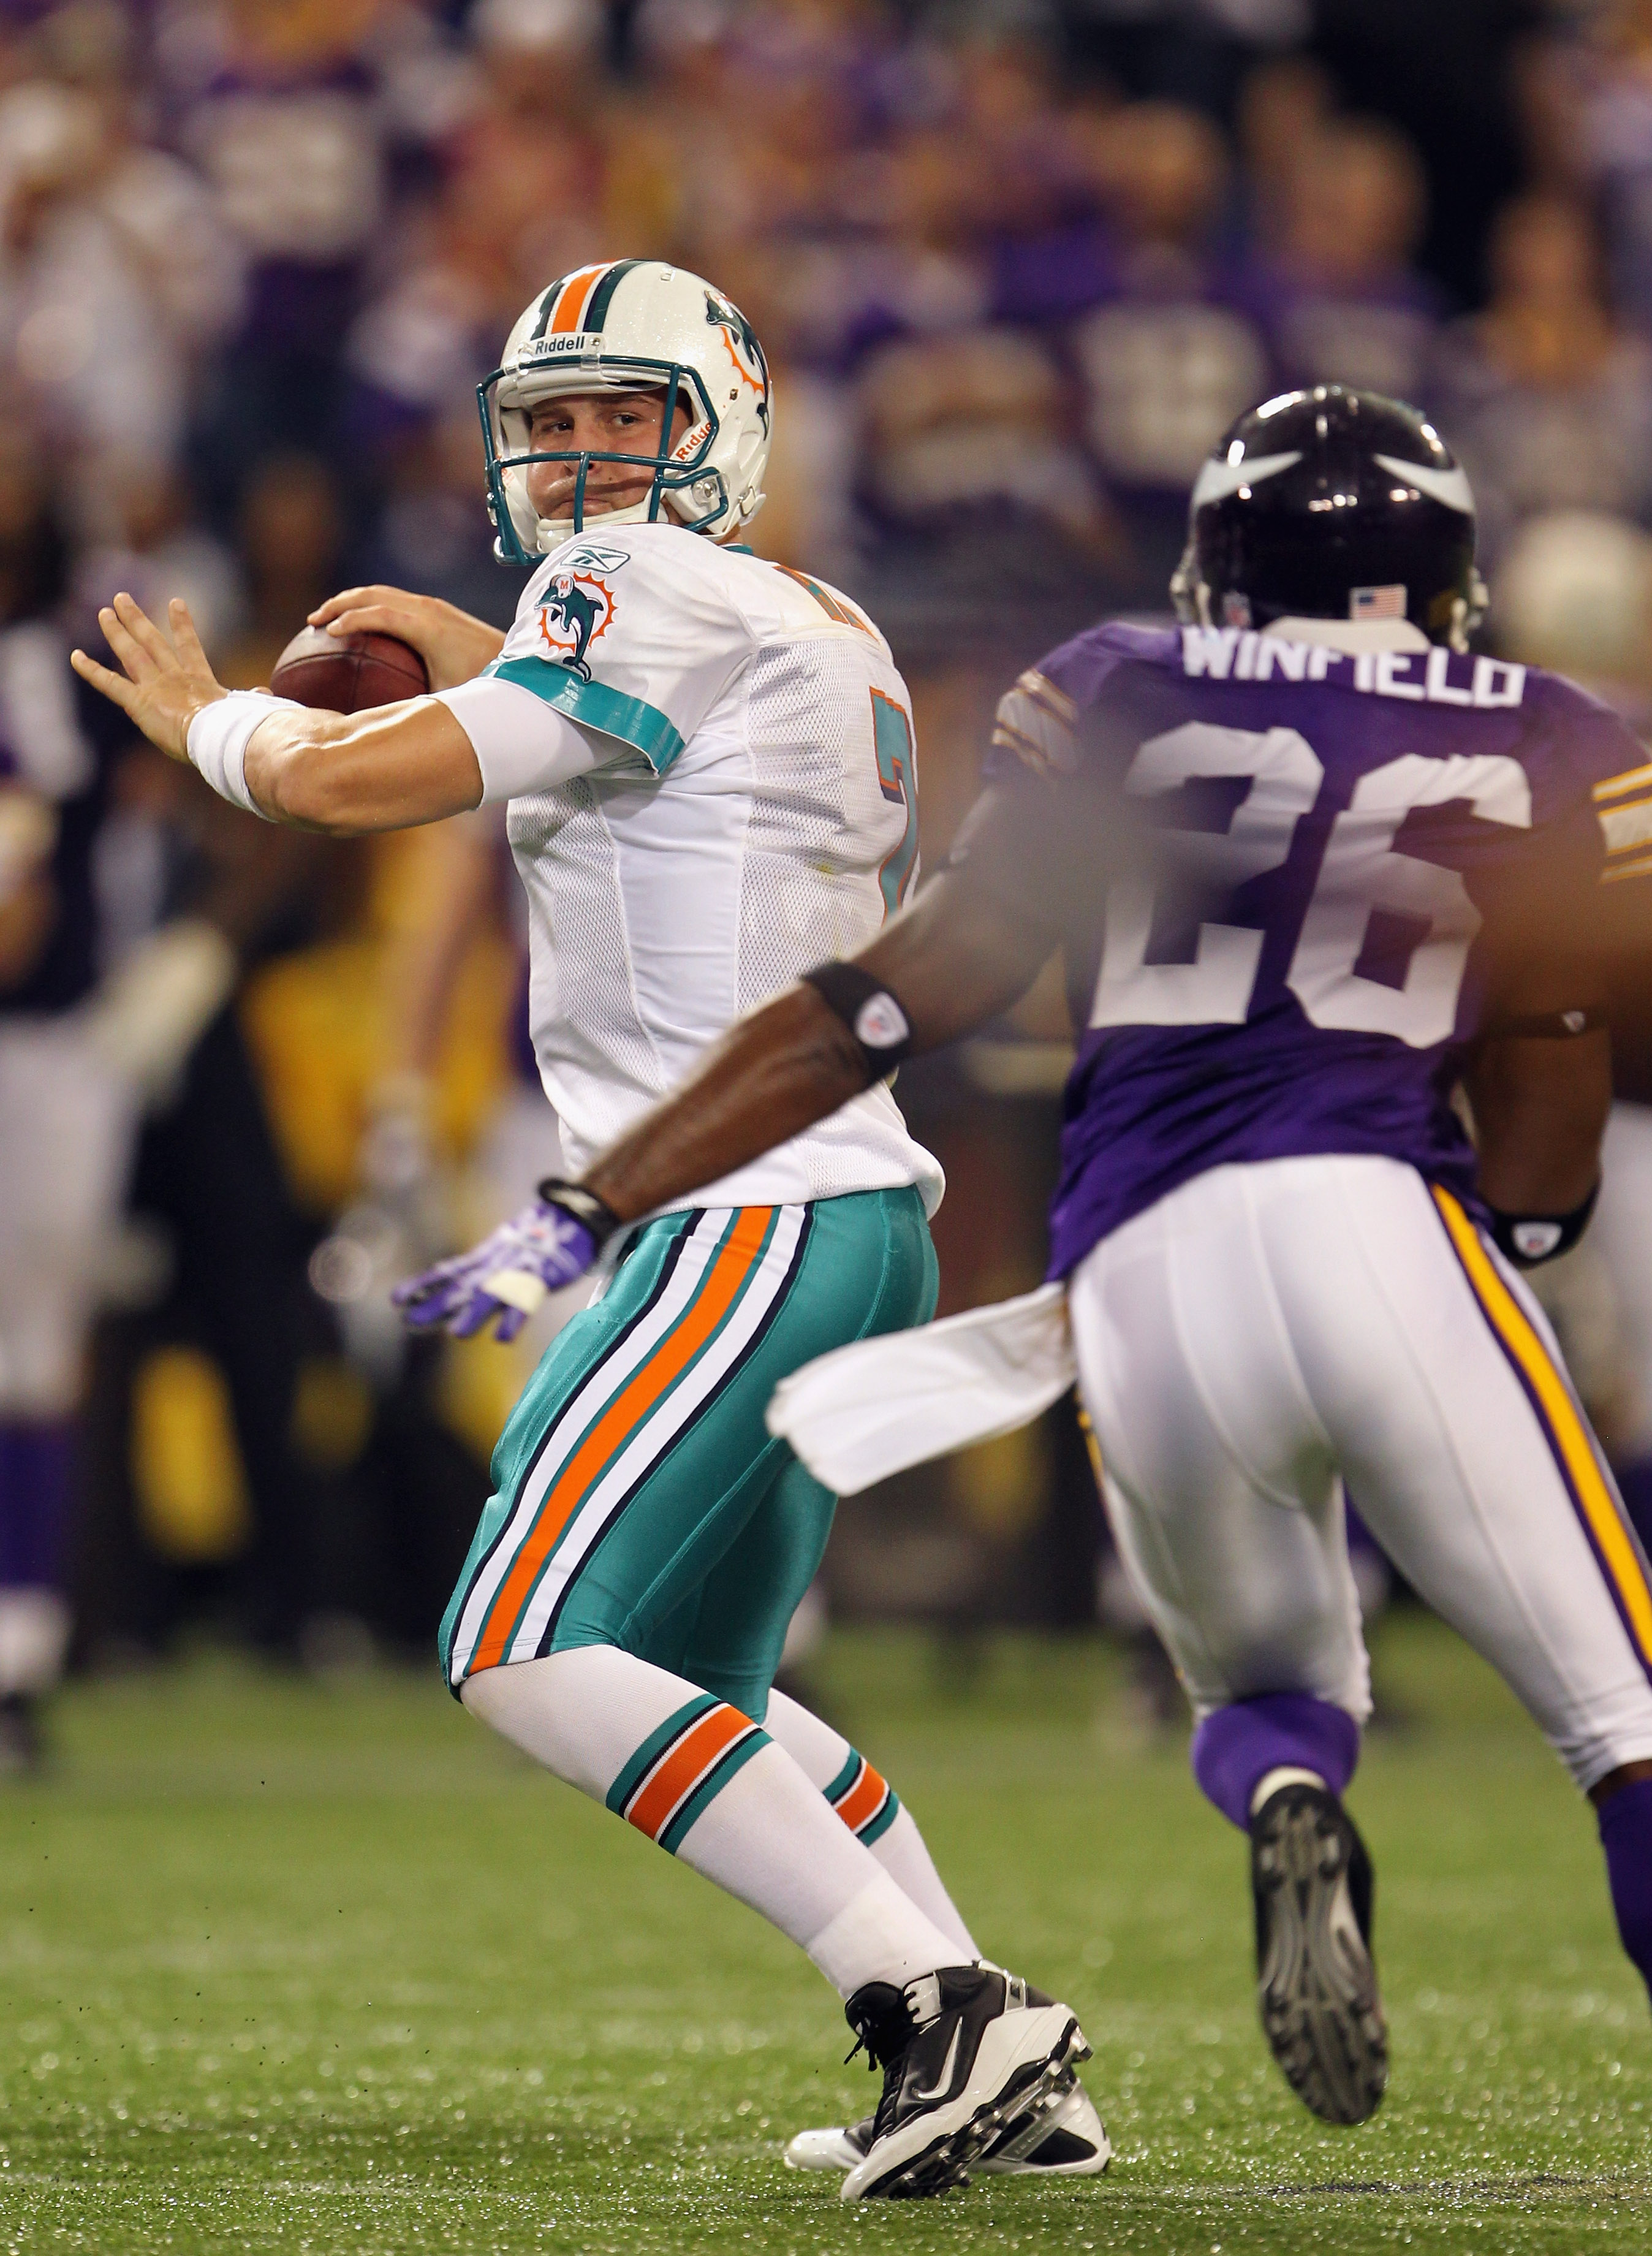 MINNEAPOLIS - SEPTEMBER 19:  Quarterback Chad Henne #7 of the Miami Dolphins passes as Antoine Winfield #26 of the Minnesota Vikings defends during the game on September 19, 2010 at Hubert H. Humphrey Metrodome in Minneapolis, Minnesota.  (Photo by Jamie